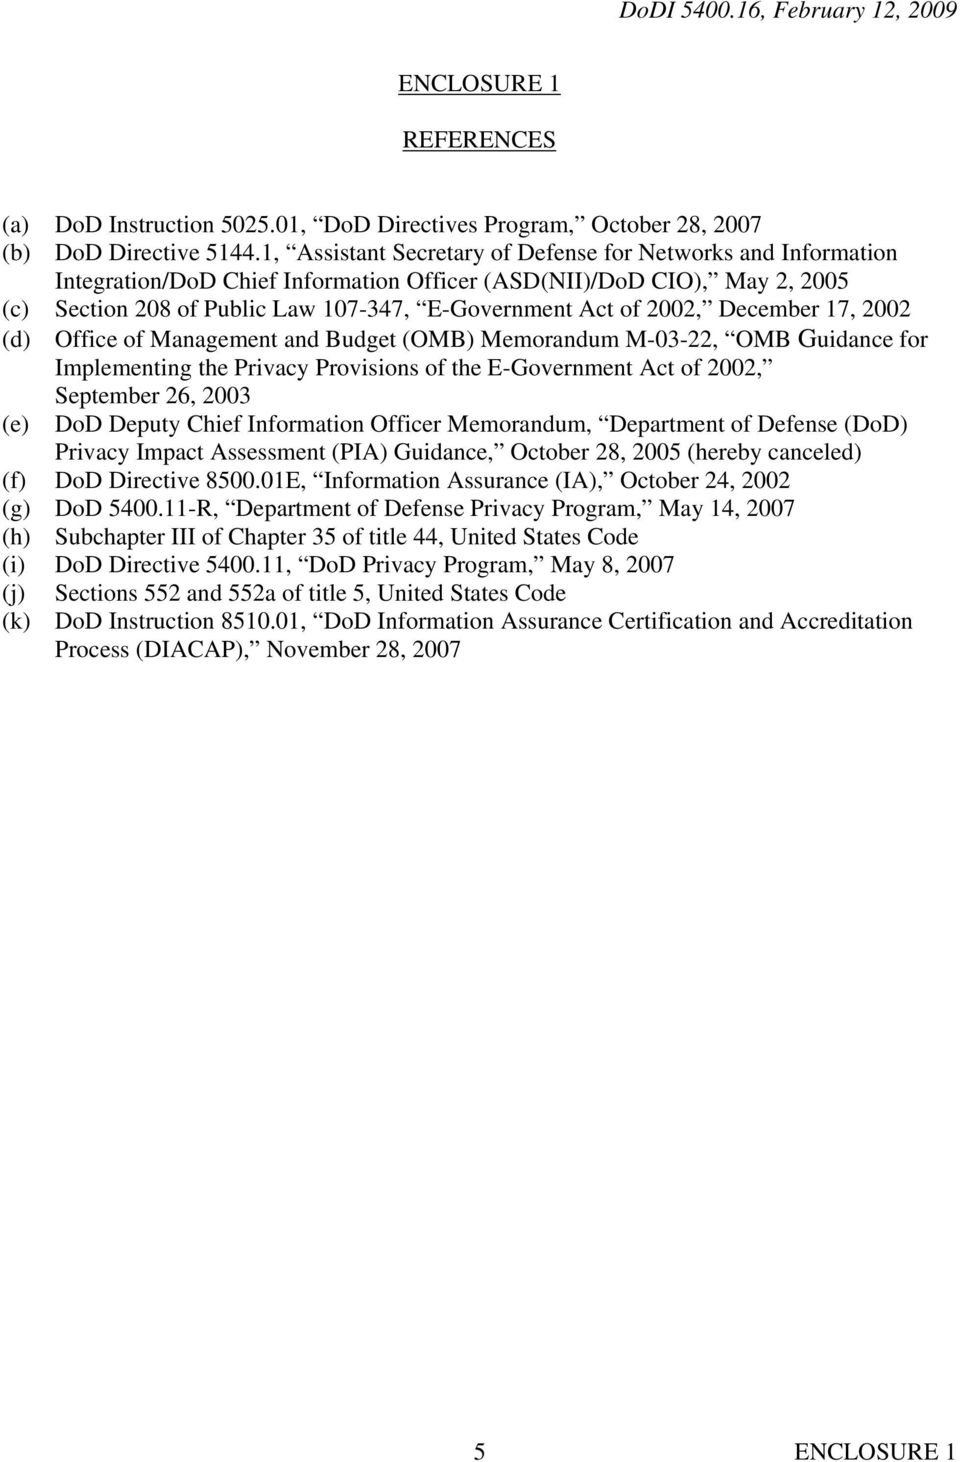 2002, December 17, 2002 (d) Office of Management and Budget (OMB) Memorandum M-03-22, OMB Guidance for Implementing the Privacy Provisions of the E-Government Act of 2002, September 26, 2003 (e) DoD